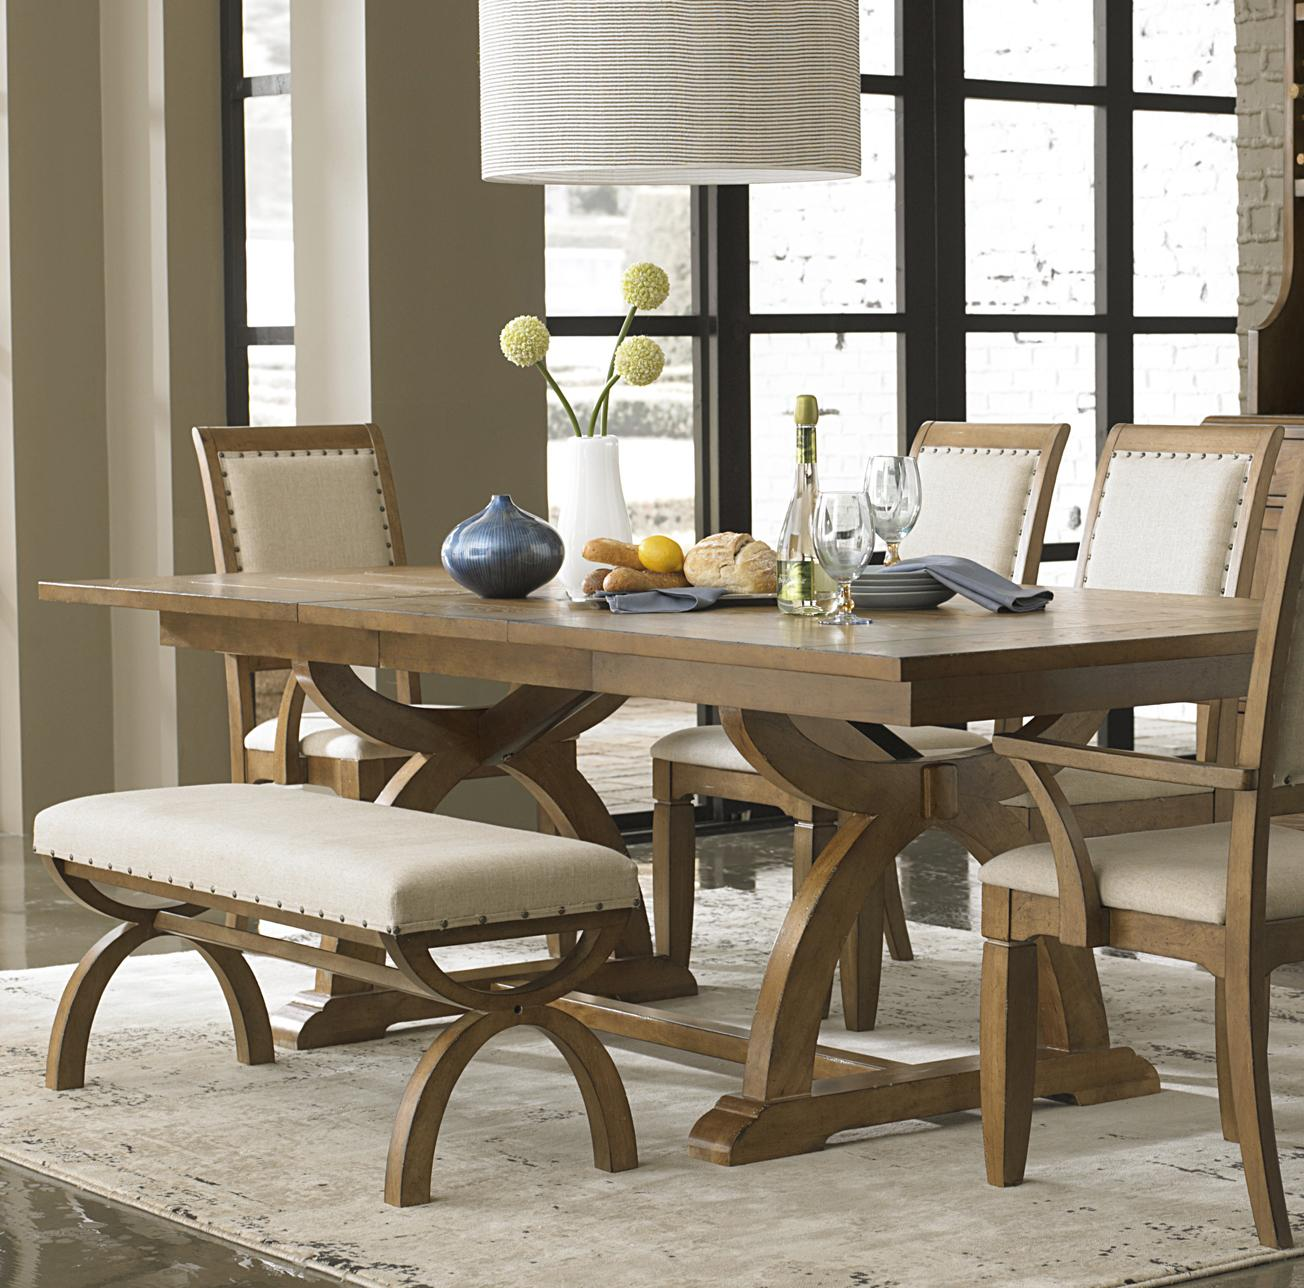 Room And Board Dining Chairs: Dining Room Table With Bench Seat